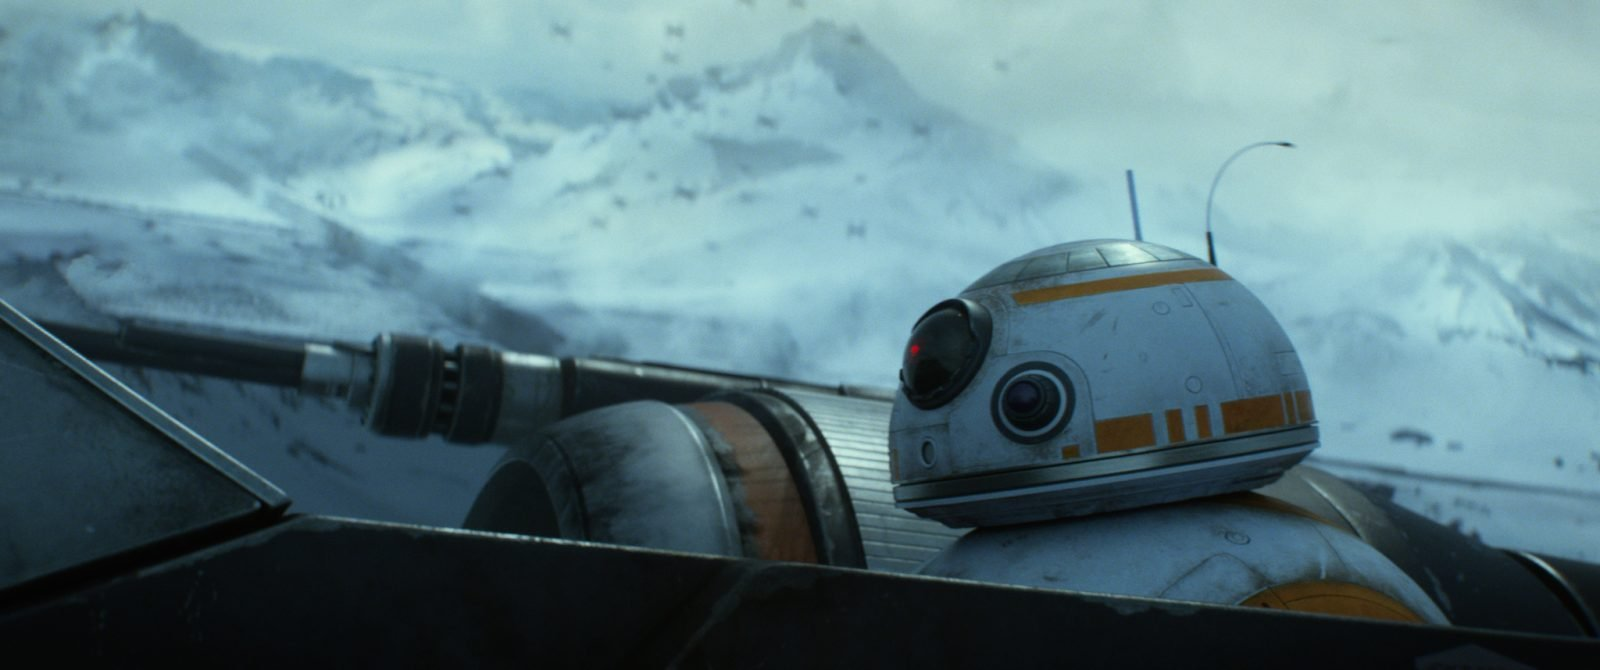 Star Wars VII The Force Awakens 2 - BB-8 in X-Wing